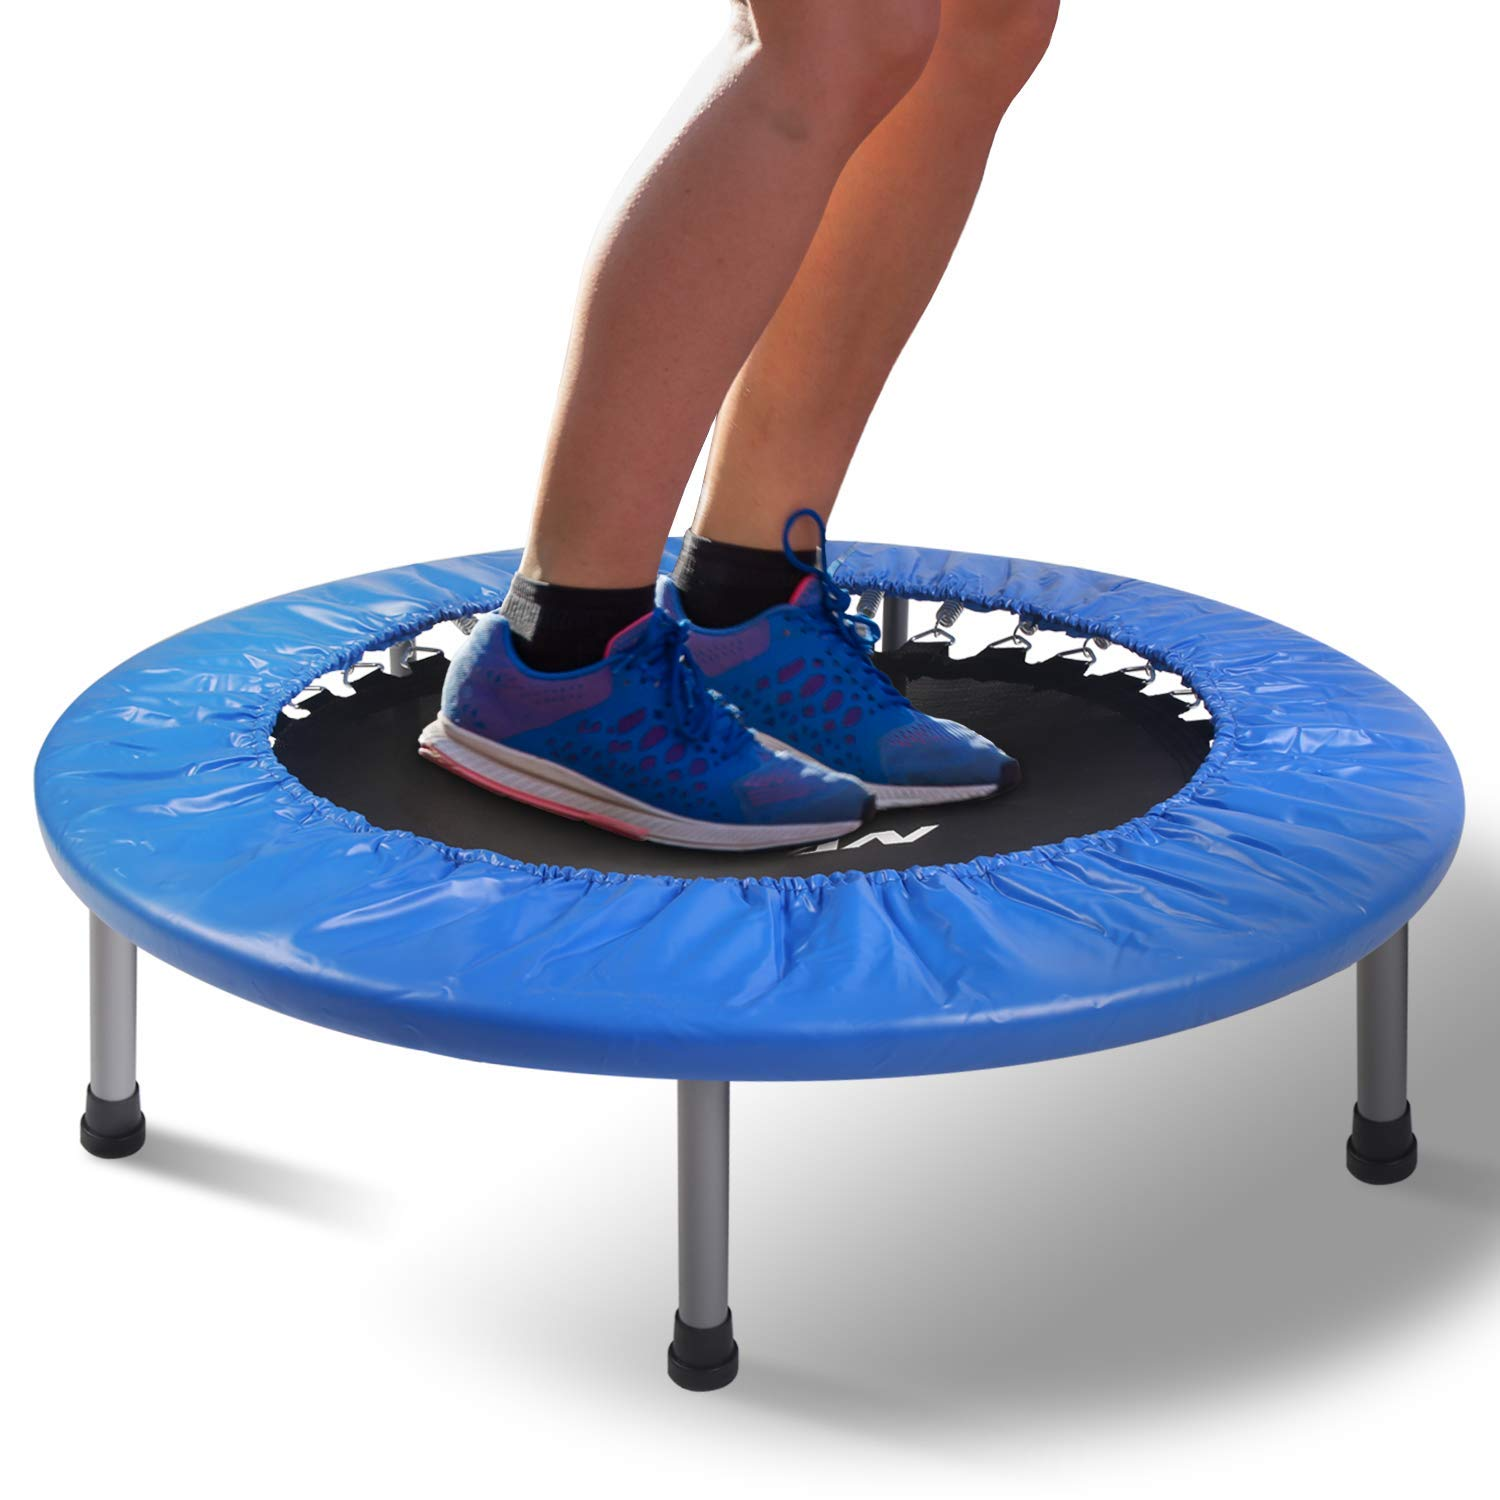 BCAN 38'' Mini Fitness Trampoline, Cardio Trainer with Safety Pad, Quiet & Stable Exercise Rebounder for Kids Adults Indoor/Garden Workout Max 300lbs - Blue